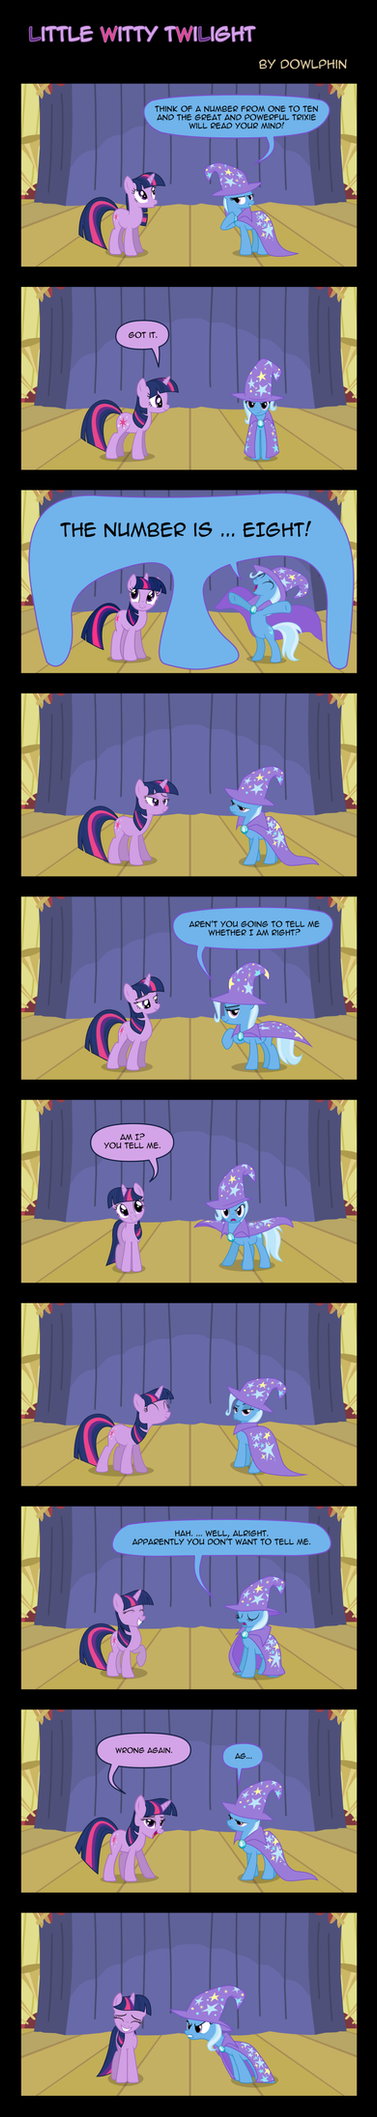 Little Witty Twilight by Dowlphin